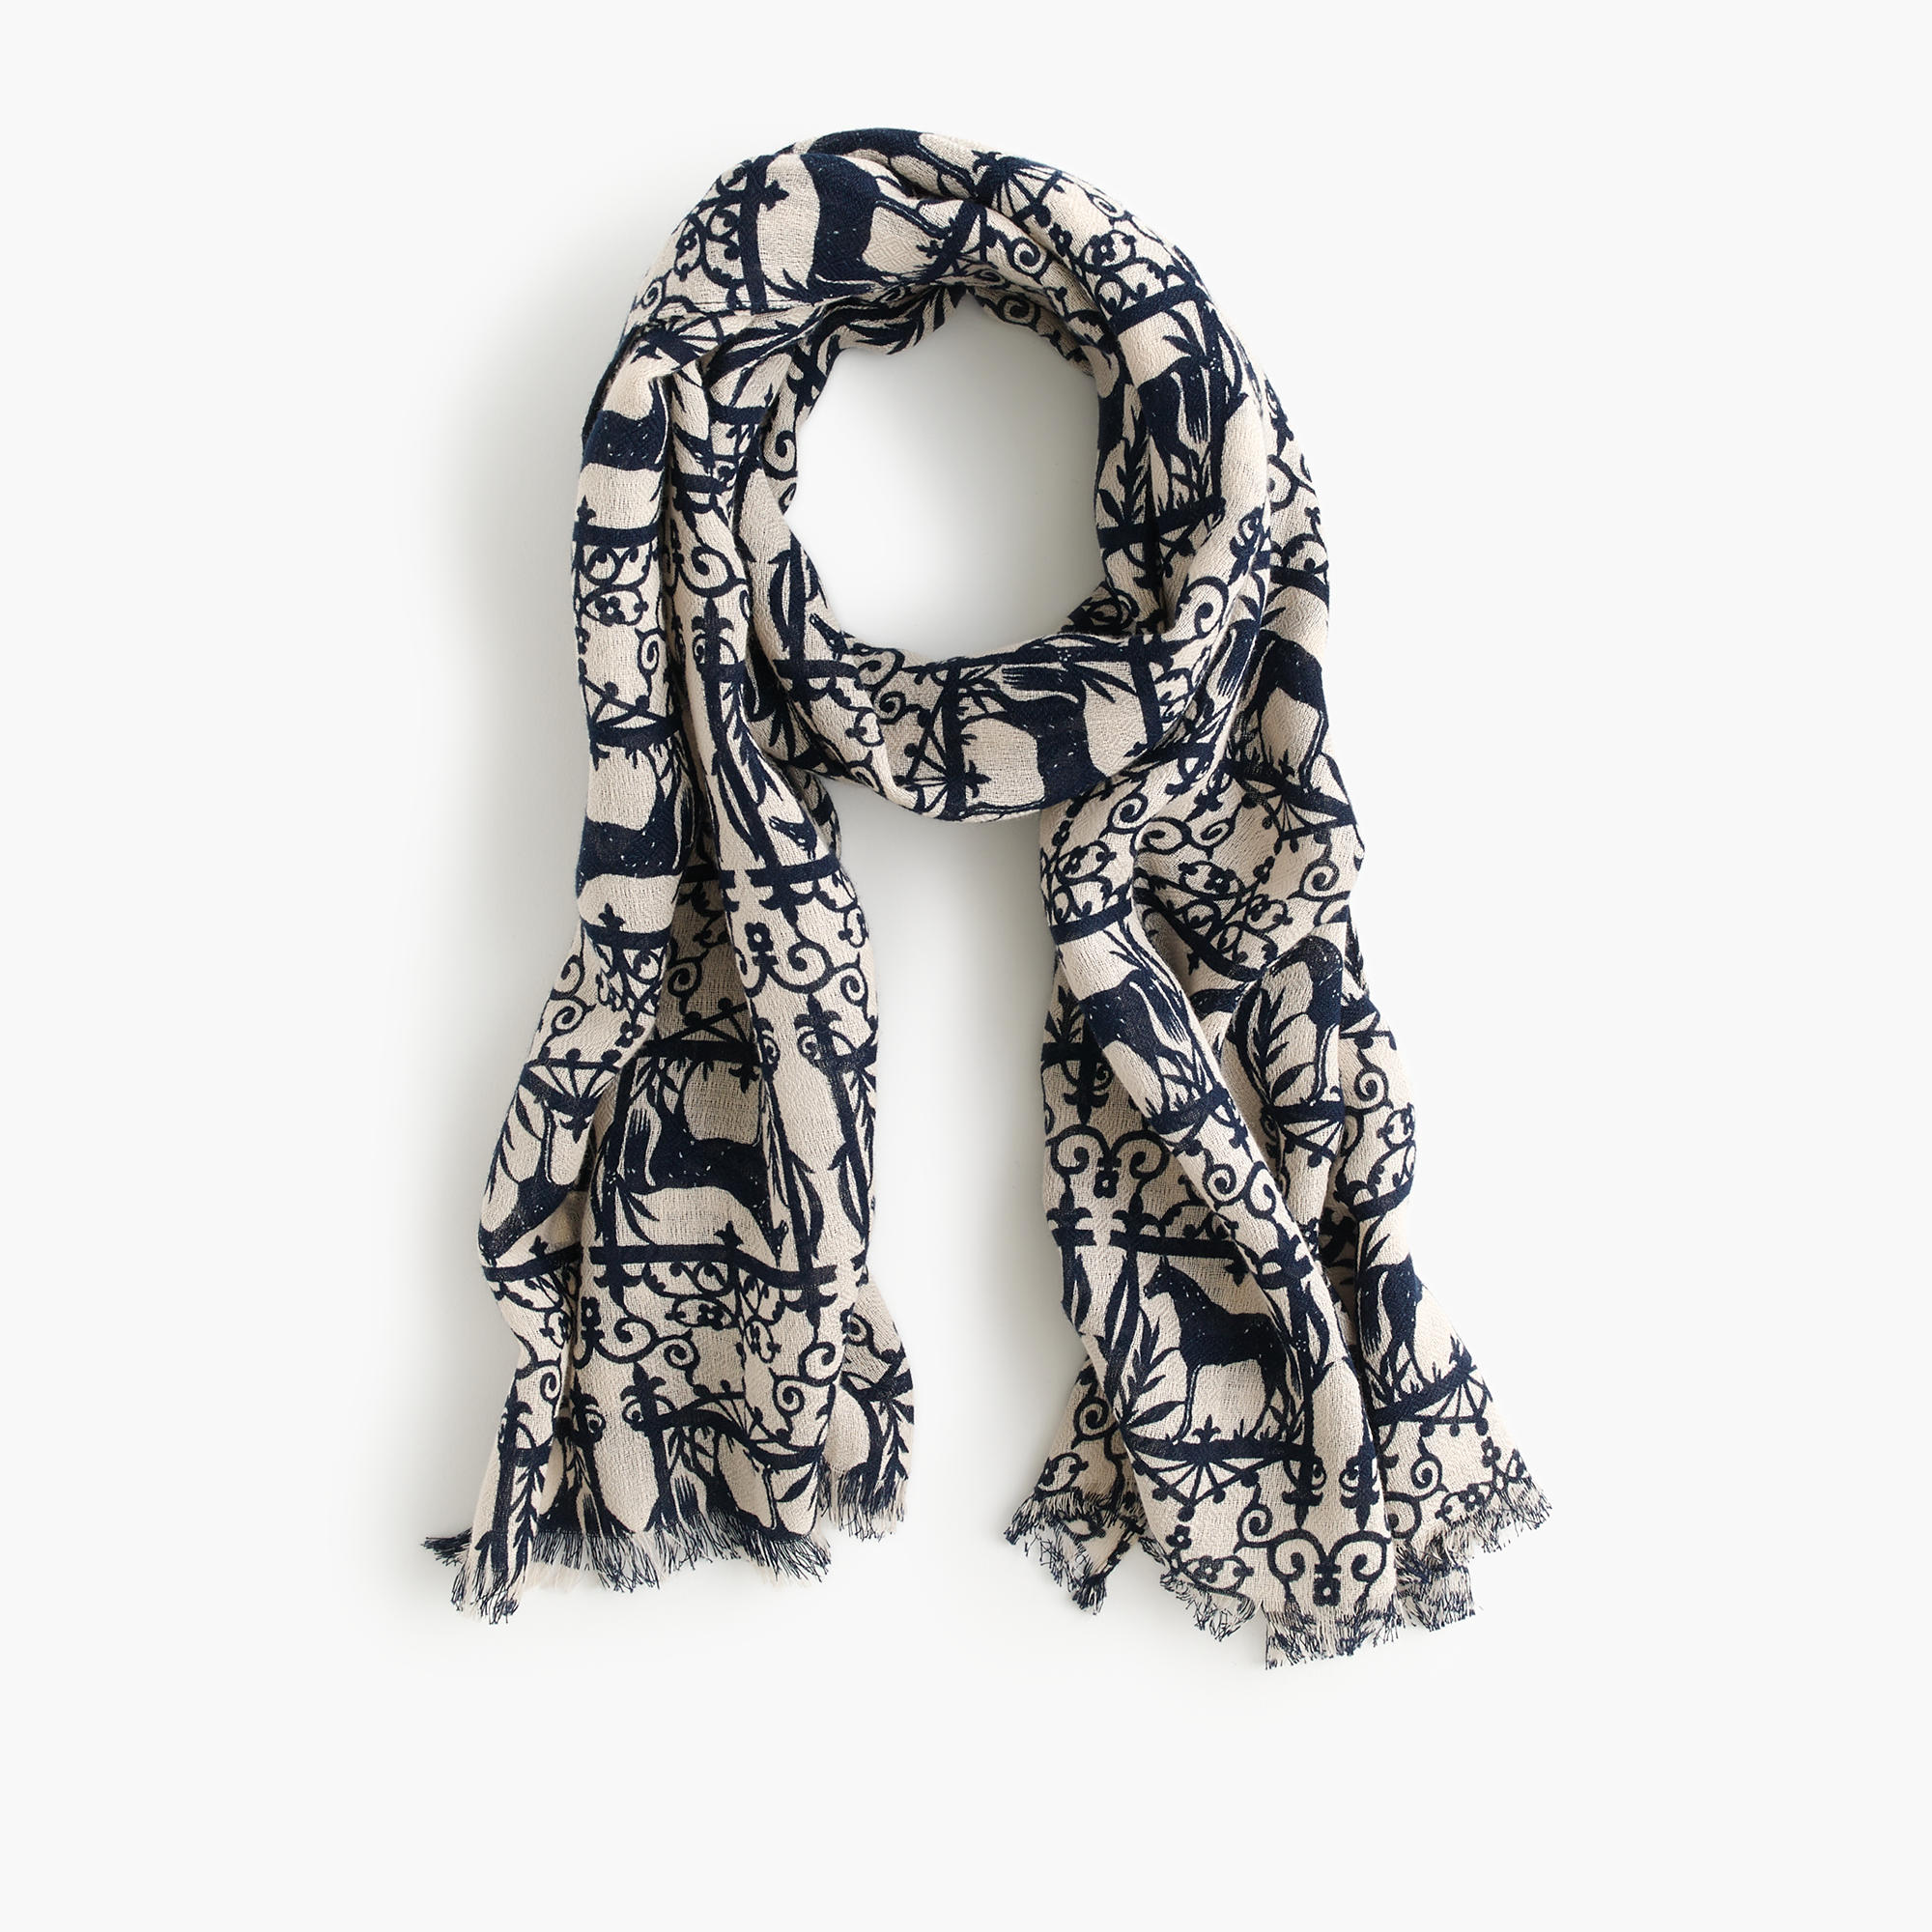 Styles of girls' fashion scarves With a variety of styles to consider, a fashionable scarf can really add personality to a plain outfit. From blanket to infinity and square styles, and a range of materials such as cotton, silk, polyester, and fur, she can have so much fun .